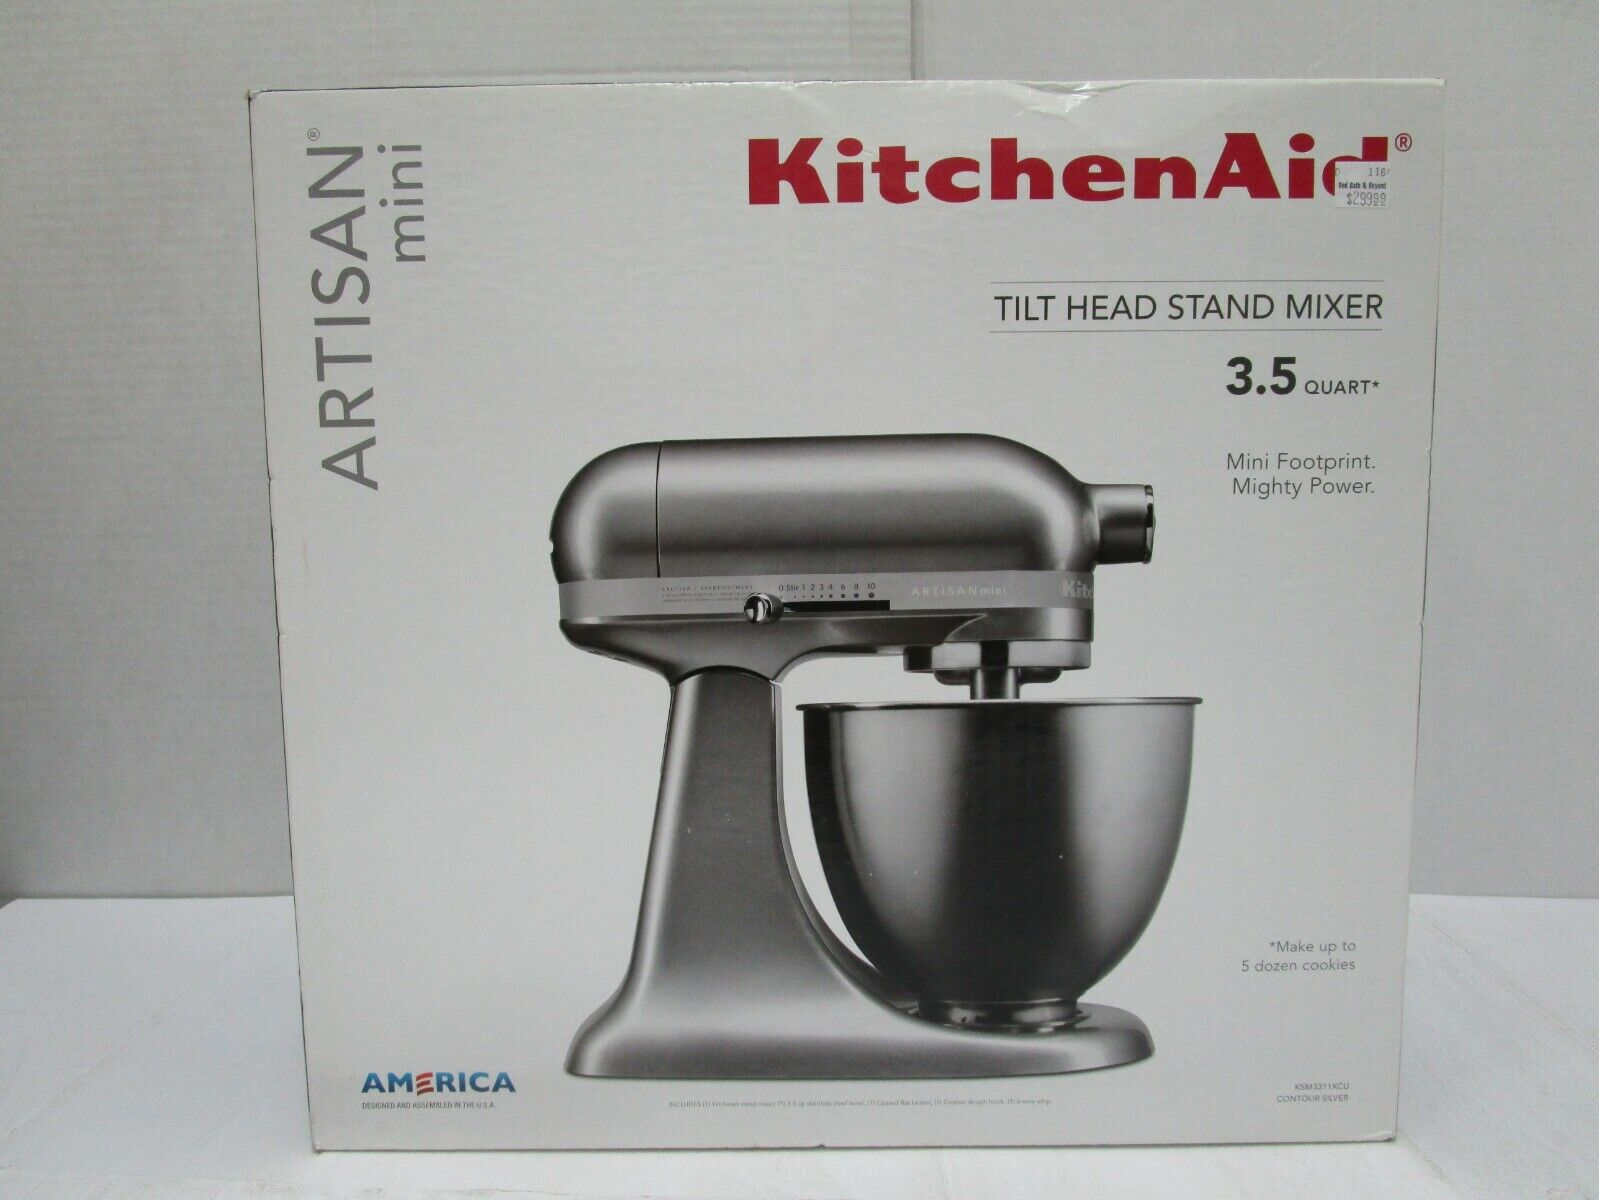 NEW KITCHENAID ARTISAN MINI TILT HEAD STAND MIXER 3.5 QT CON